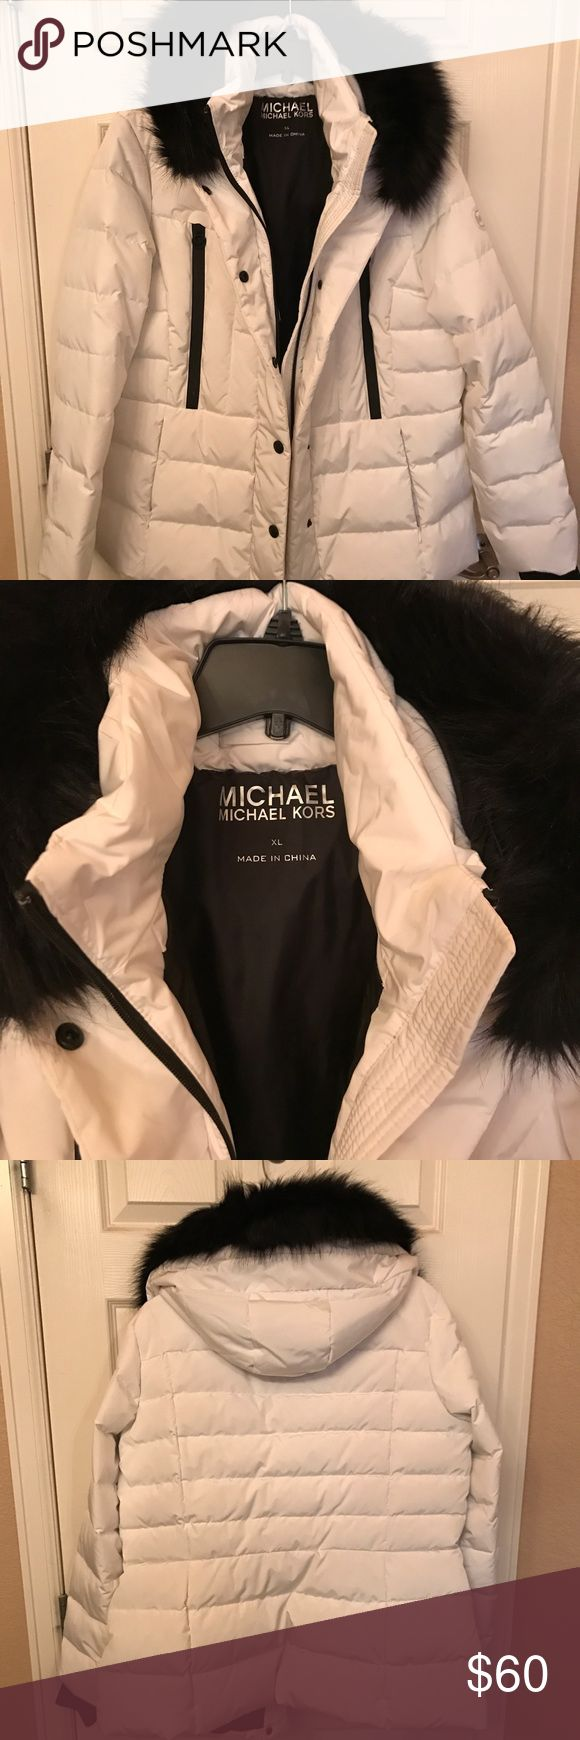 Michael Kors women's puffer coat Women's white puffer coat with hood a black faux fur trim.  The black fur trim is removable.  This coat does not have the tags on it but has only been worn one time.  It is essentially new.  This coat is really cute! MICHAEL Michael Kors Jackets & Coats Puffers